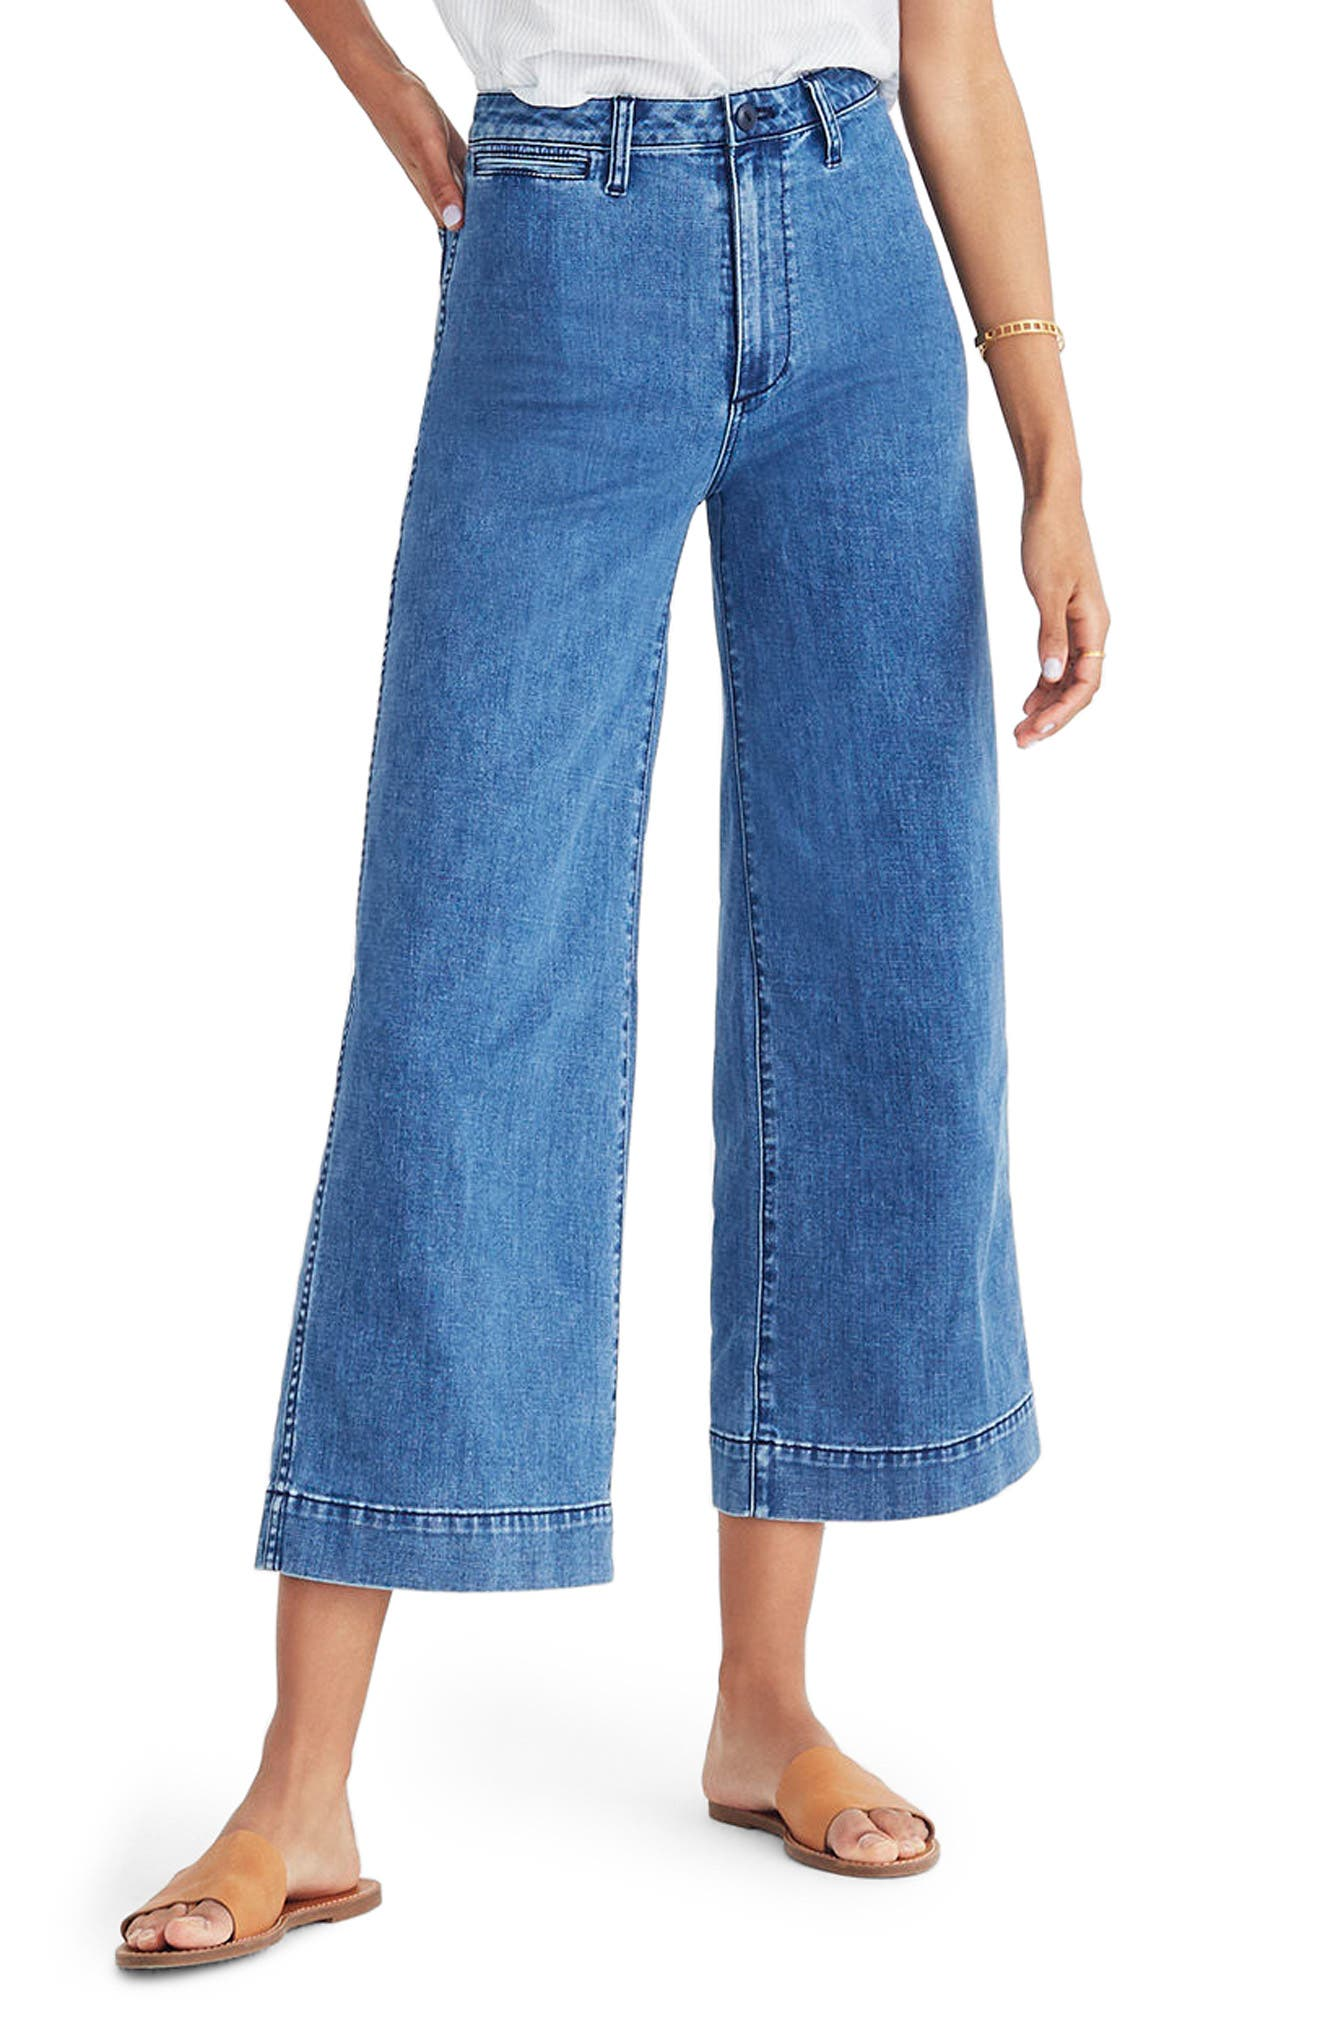 MADEWELL, Emmett Crop Wide Leg Jeans, Main thumbnail 1, color, ROSALIE